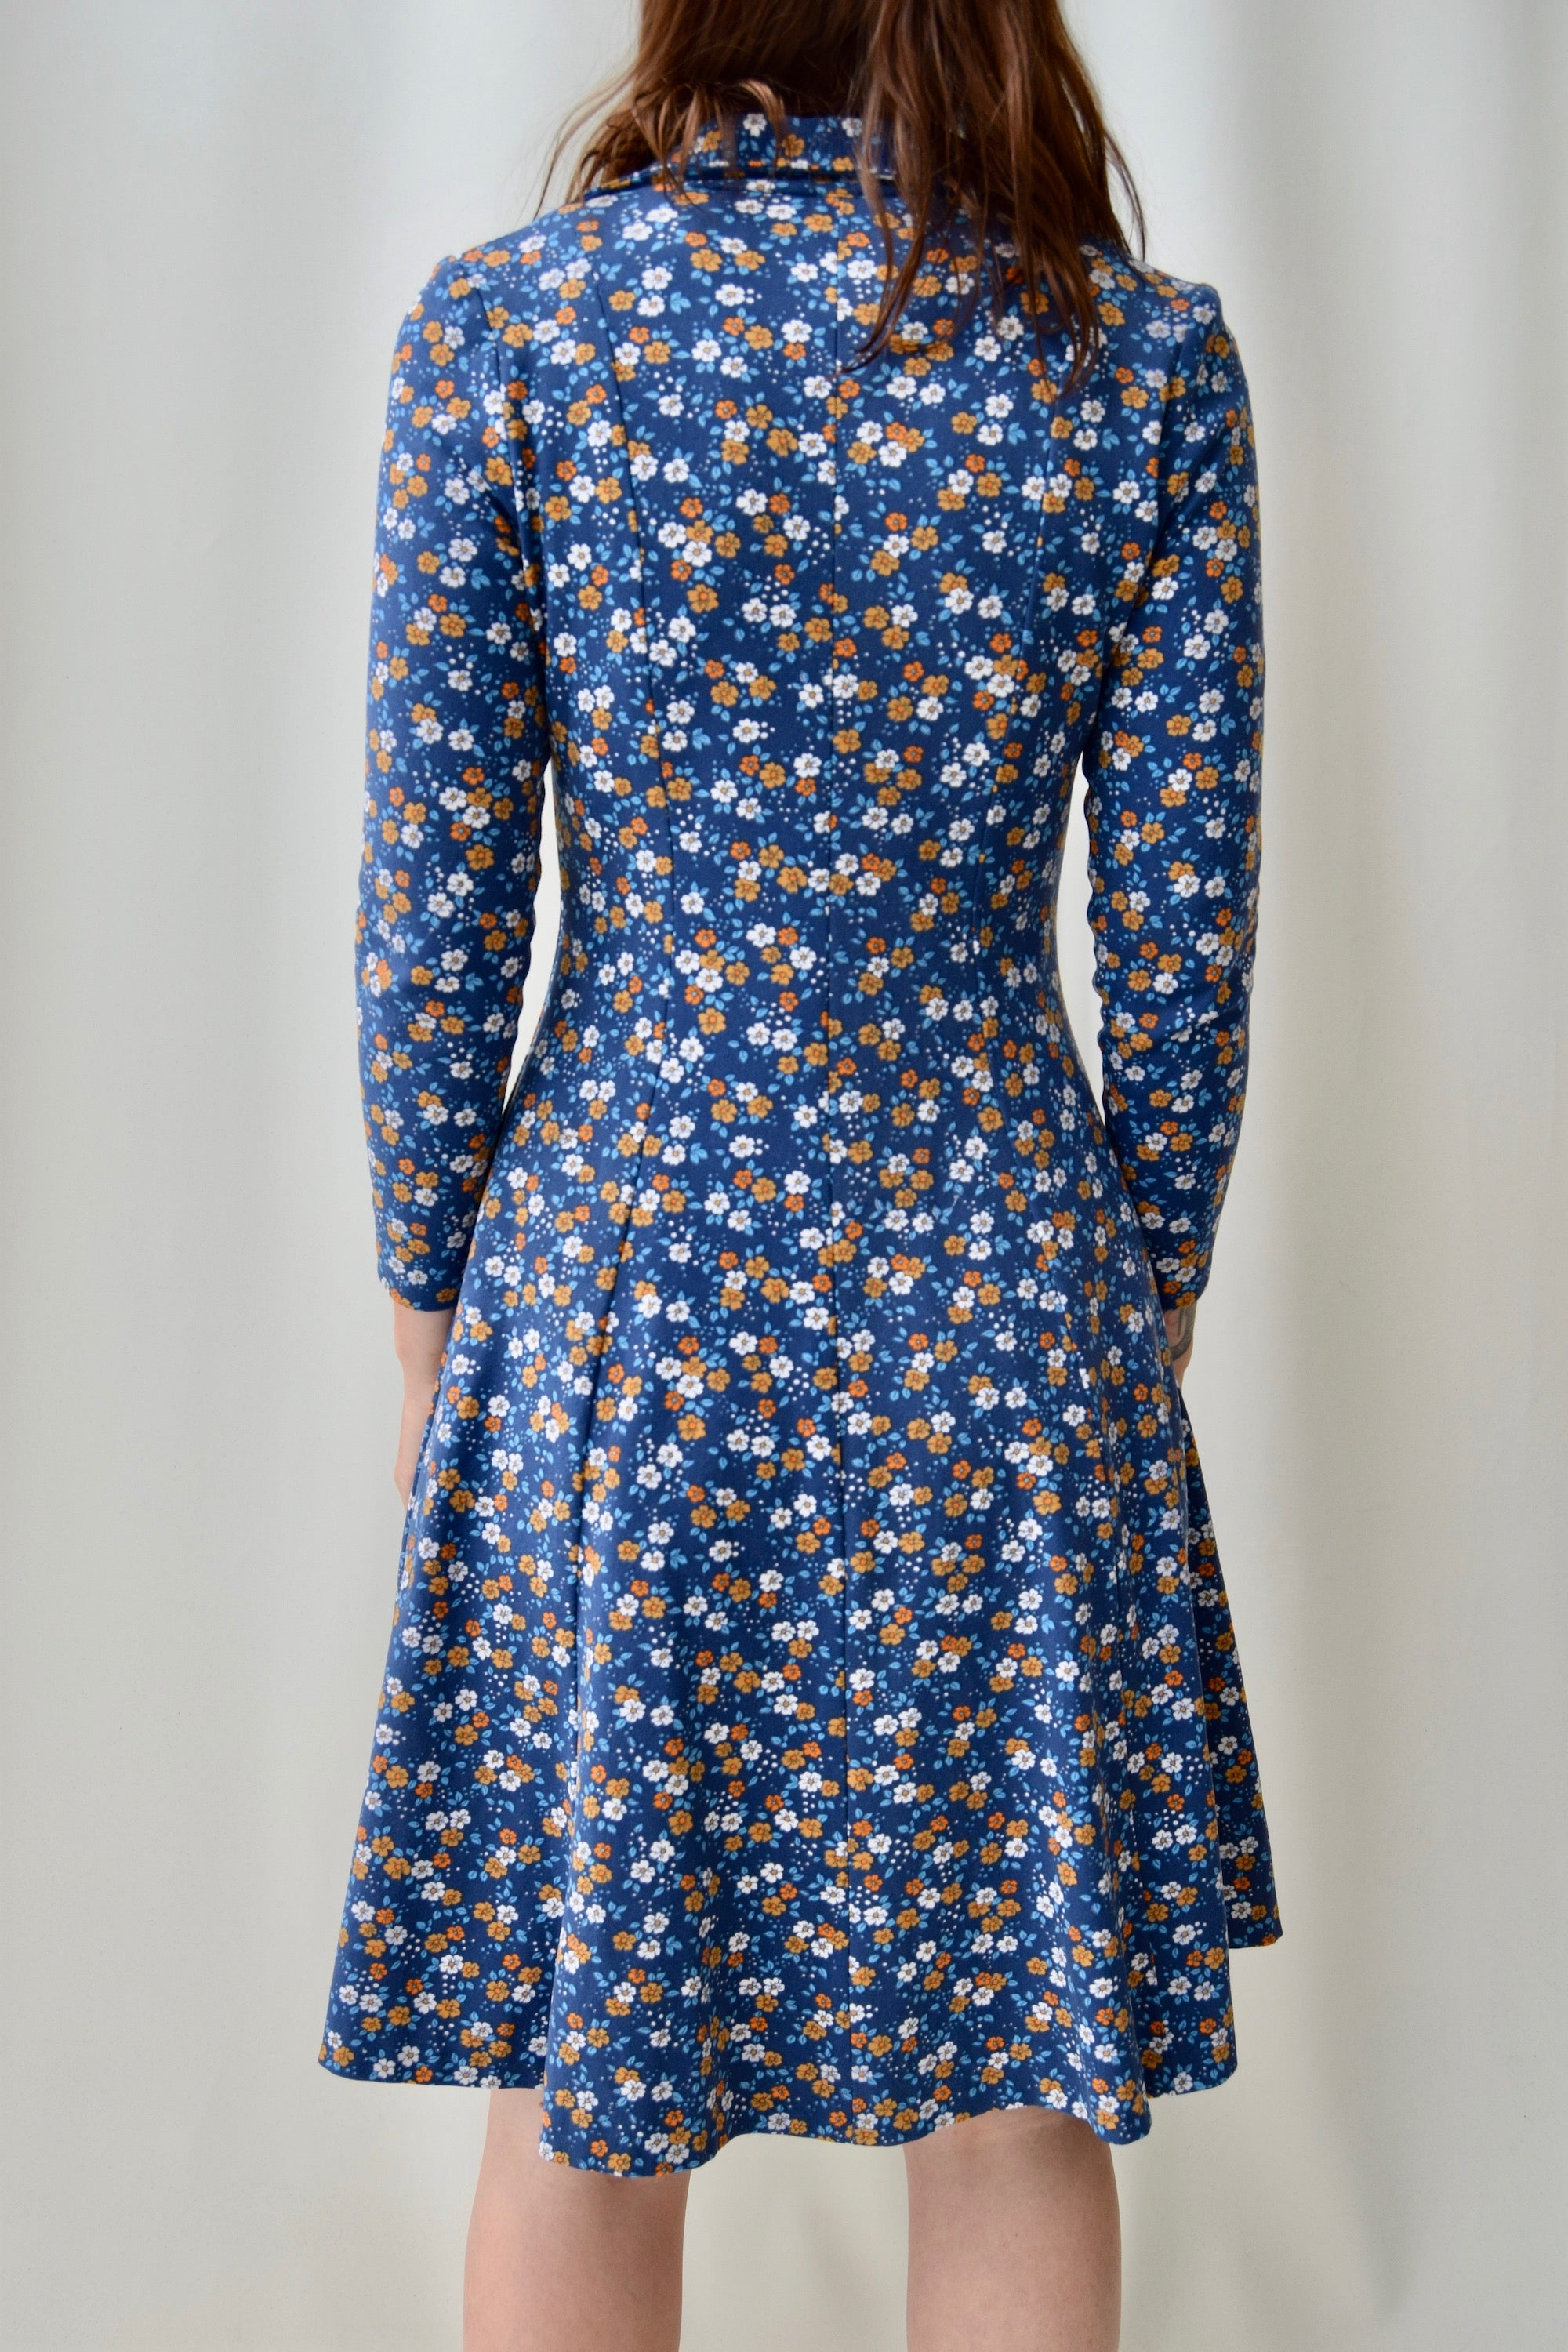 70's Poly Micro Floral Dress